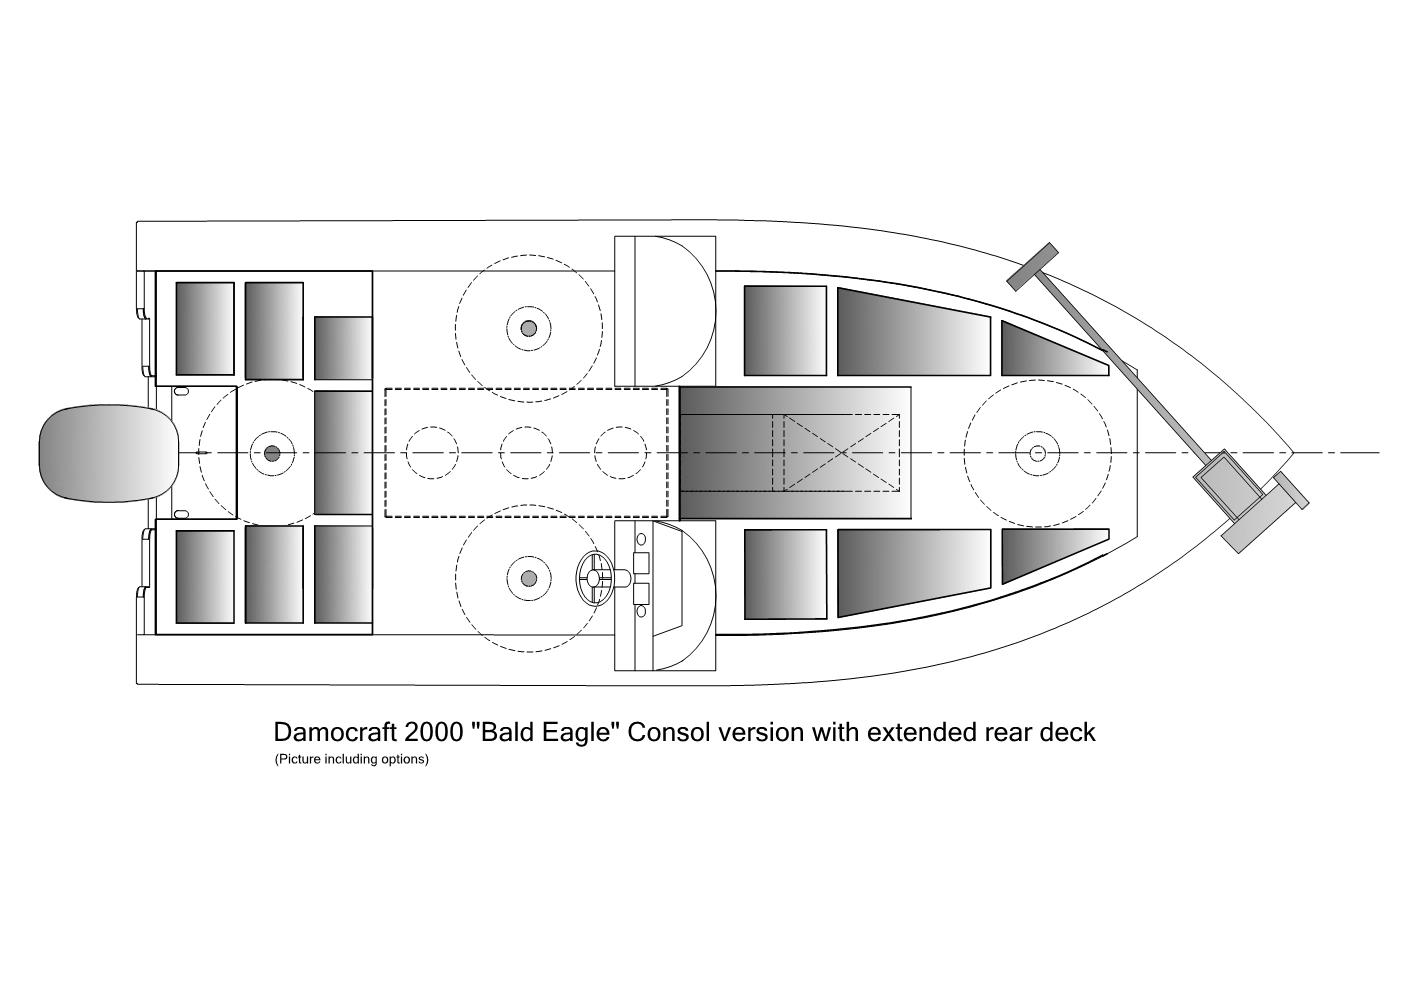 Damocraft 2000 Bald Eagle Consol version with extended reardeck